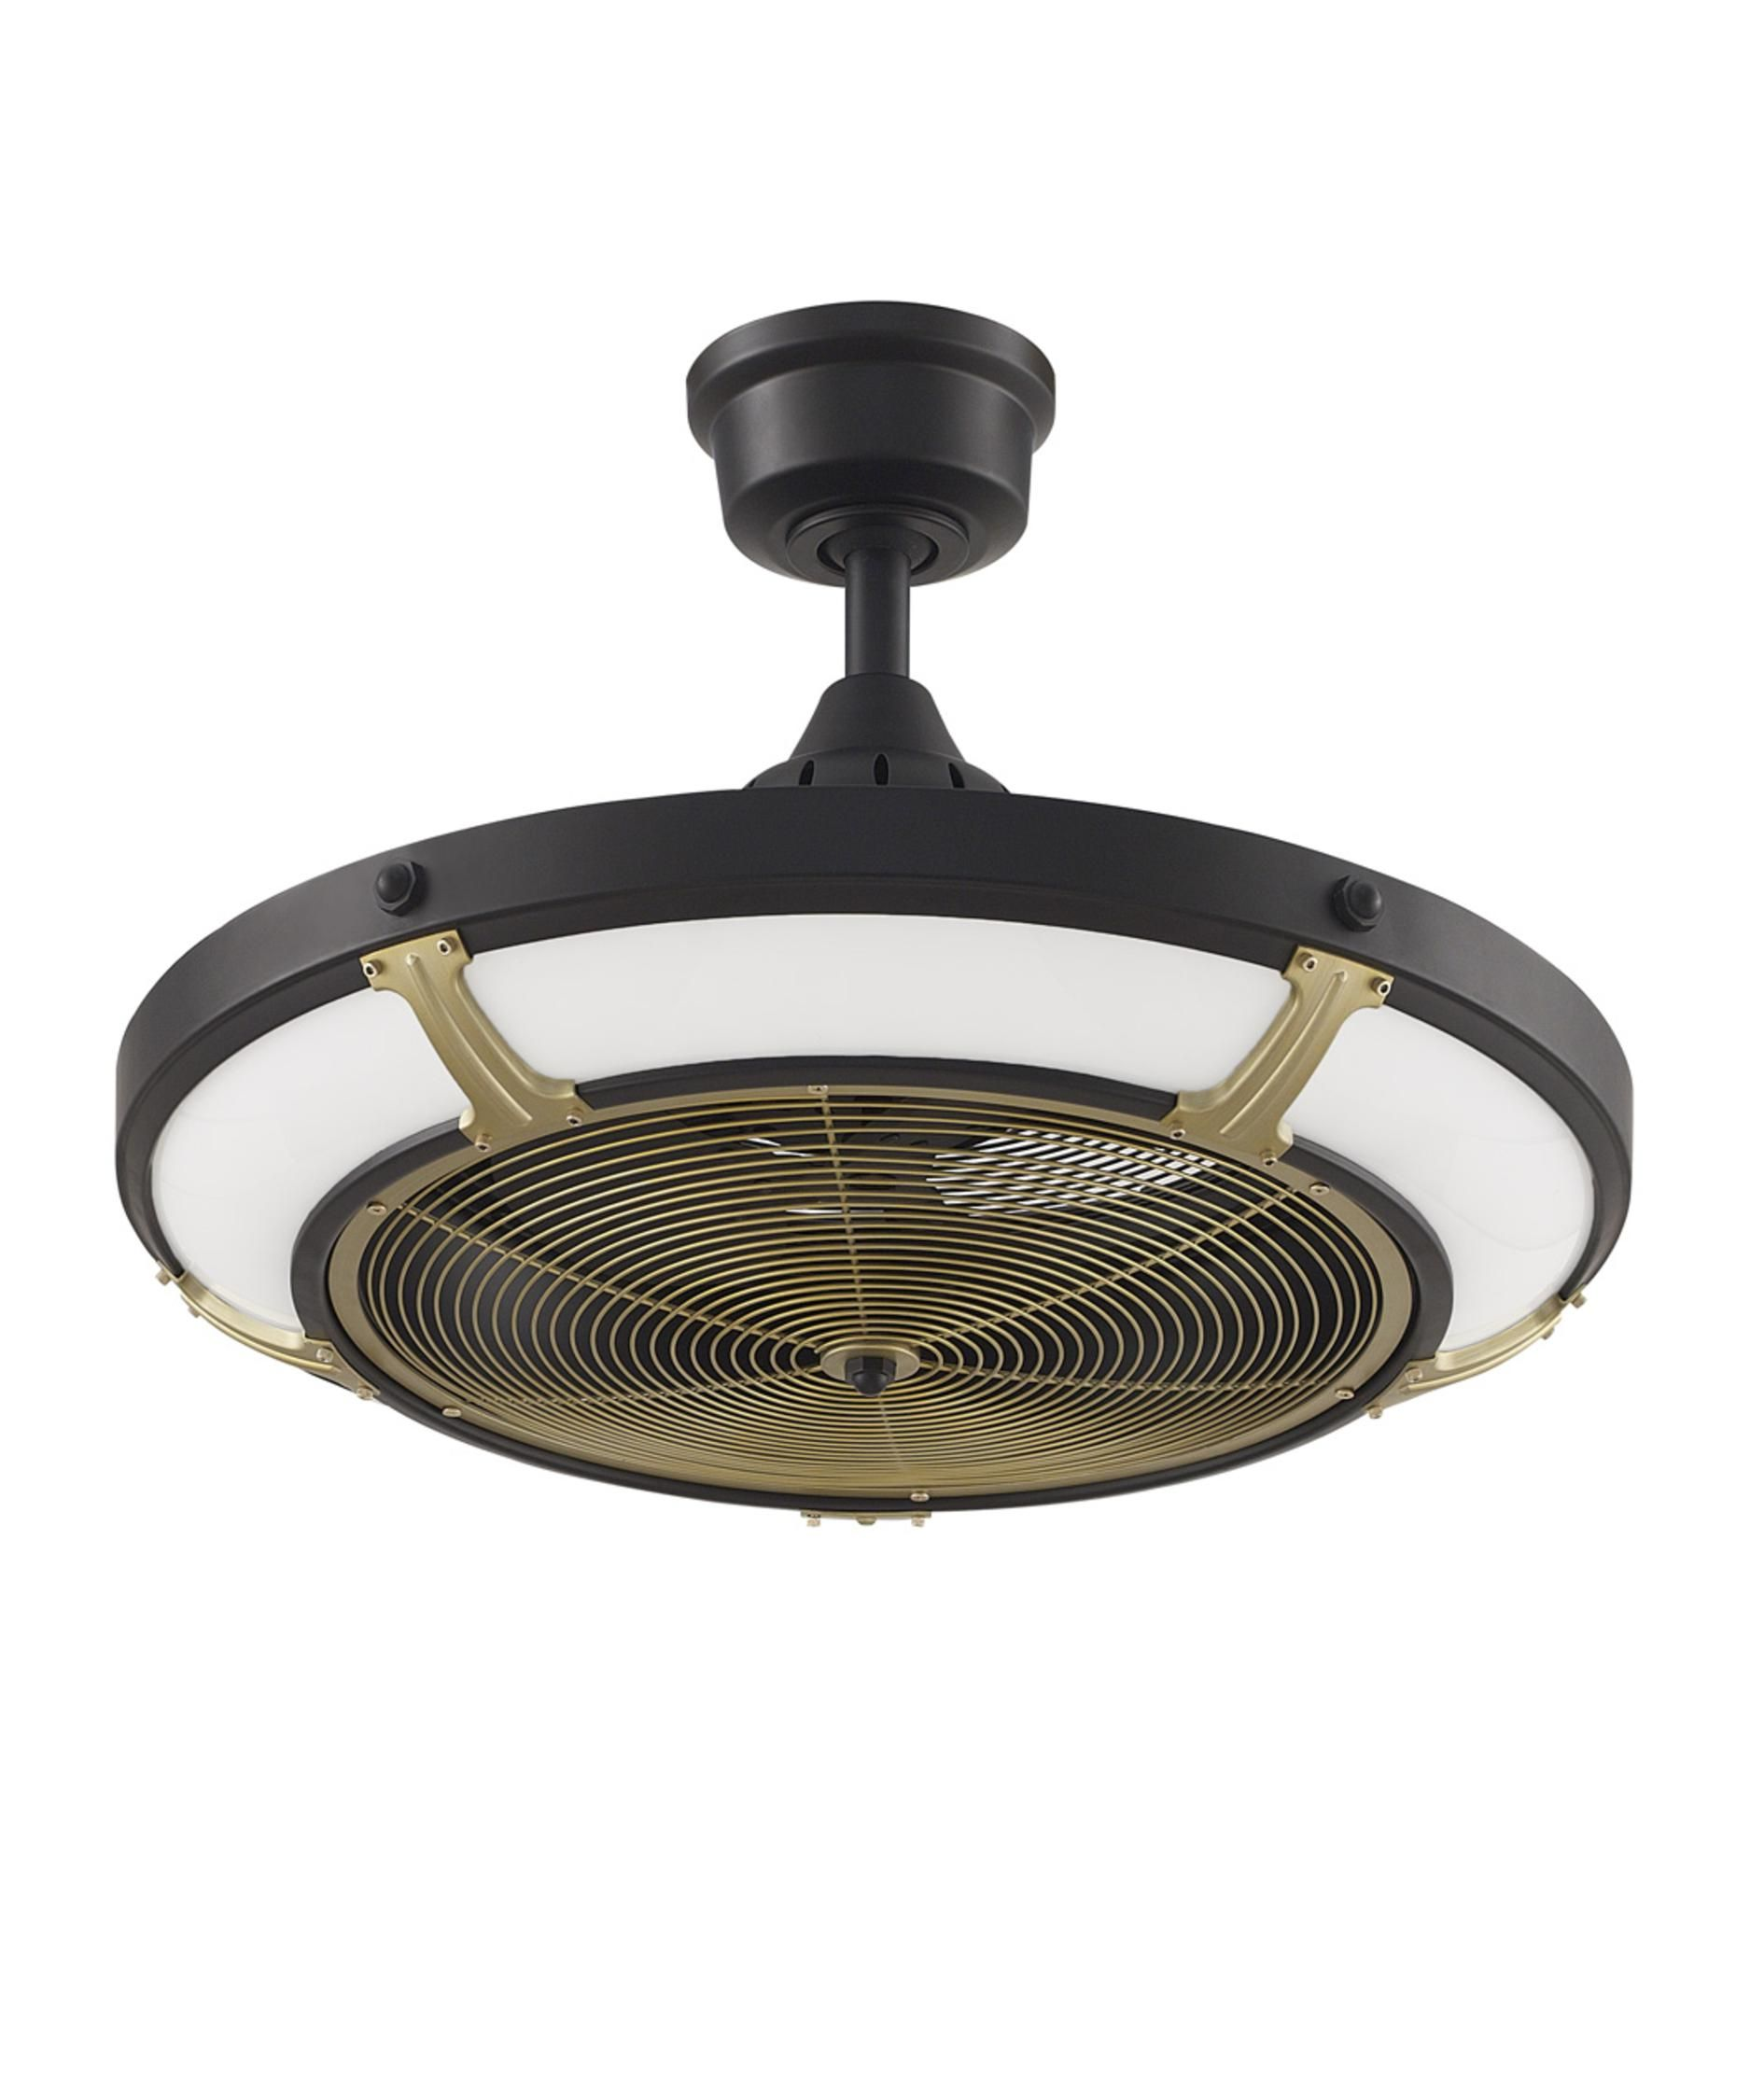 Pickett Drum 12 Inch Ceiling Fan With Light Kit Capitol Lighting Ceiling Fan With Light Fan Light Black Ceiling Fan